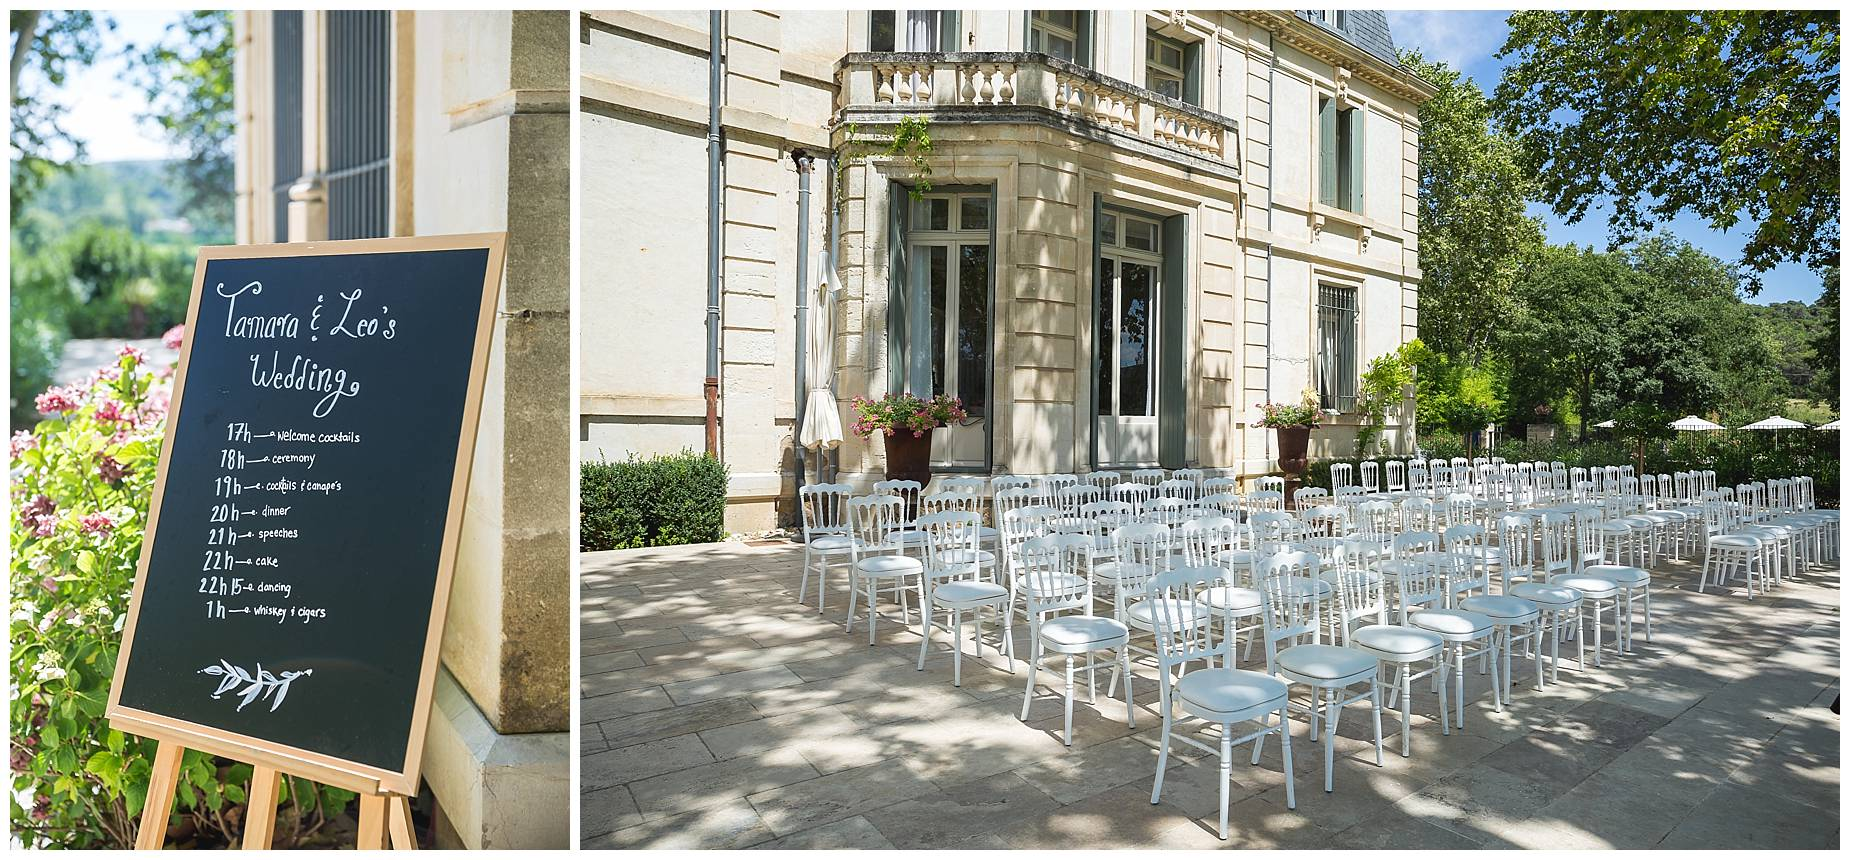 Chateau de Malmont Wedding set up